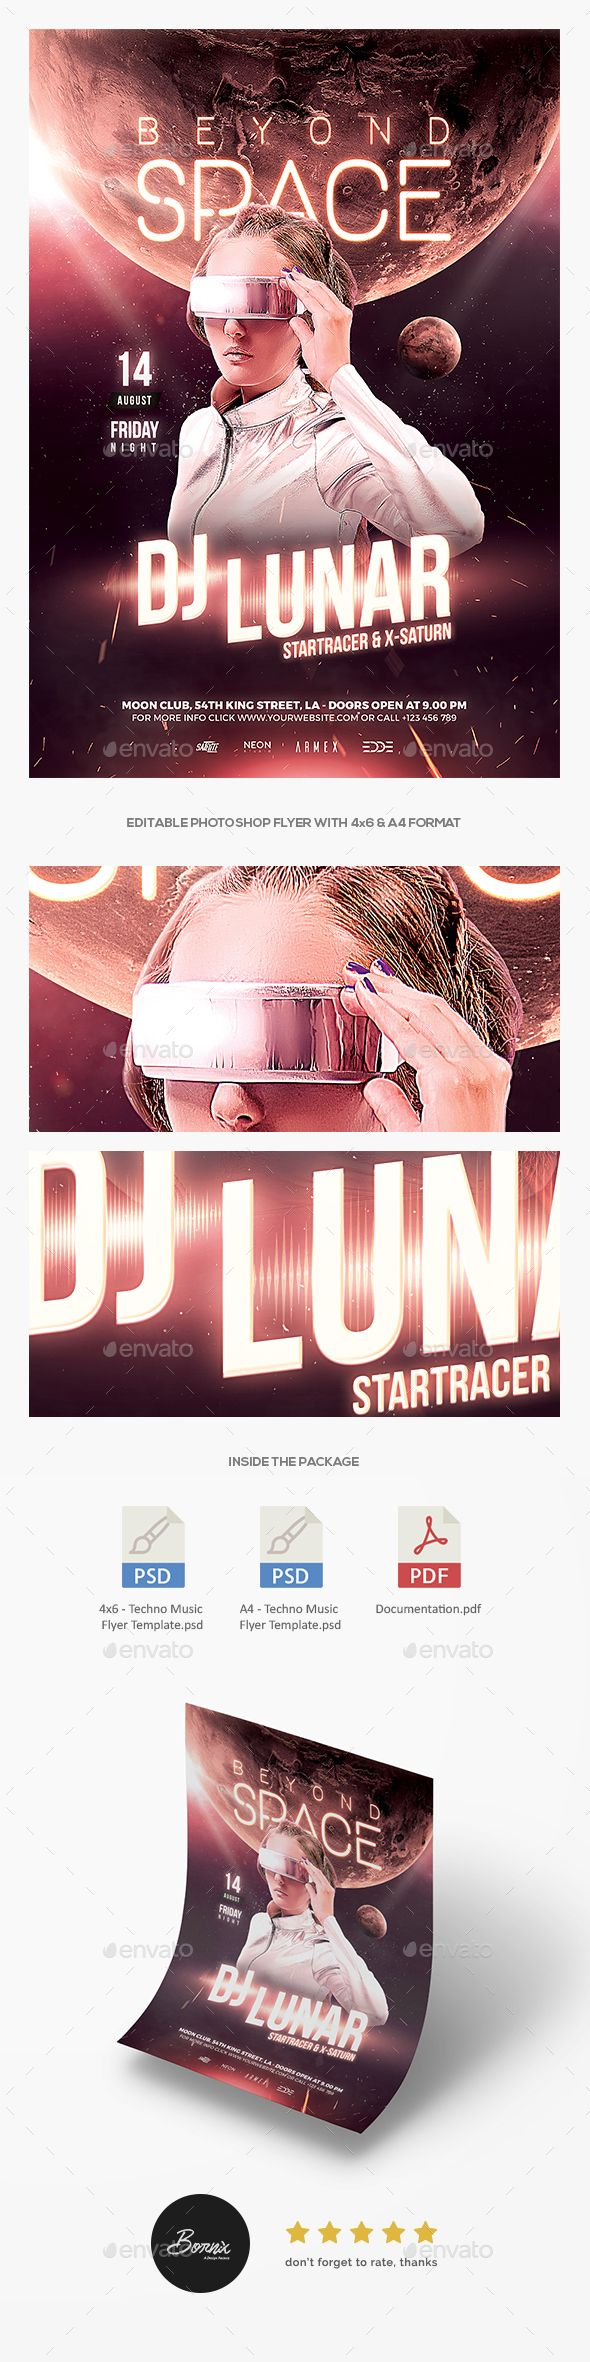 Techno Music flyer template for Photoshop, only on GraphicRiver #graphicriver #envato #flyer #poster #template #photoshop #graphic #design #designer #creative #ads #advertisements #banner #promotion #techno #music #futuristic #modern #edm #electronic #dance #dj #concert